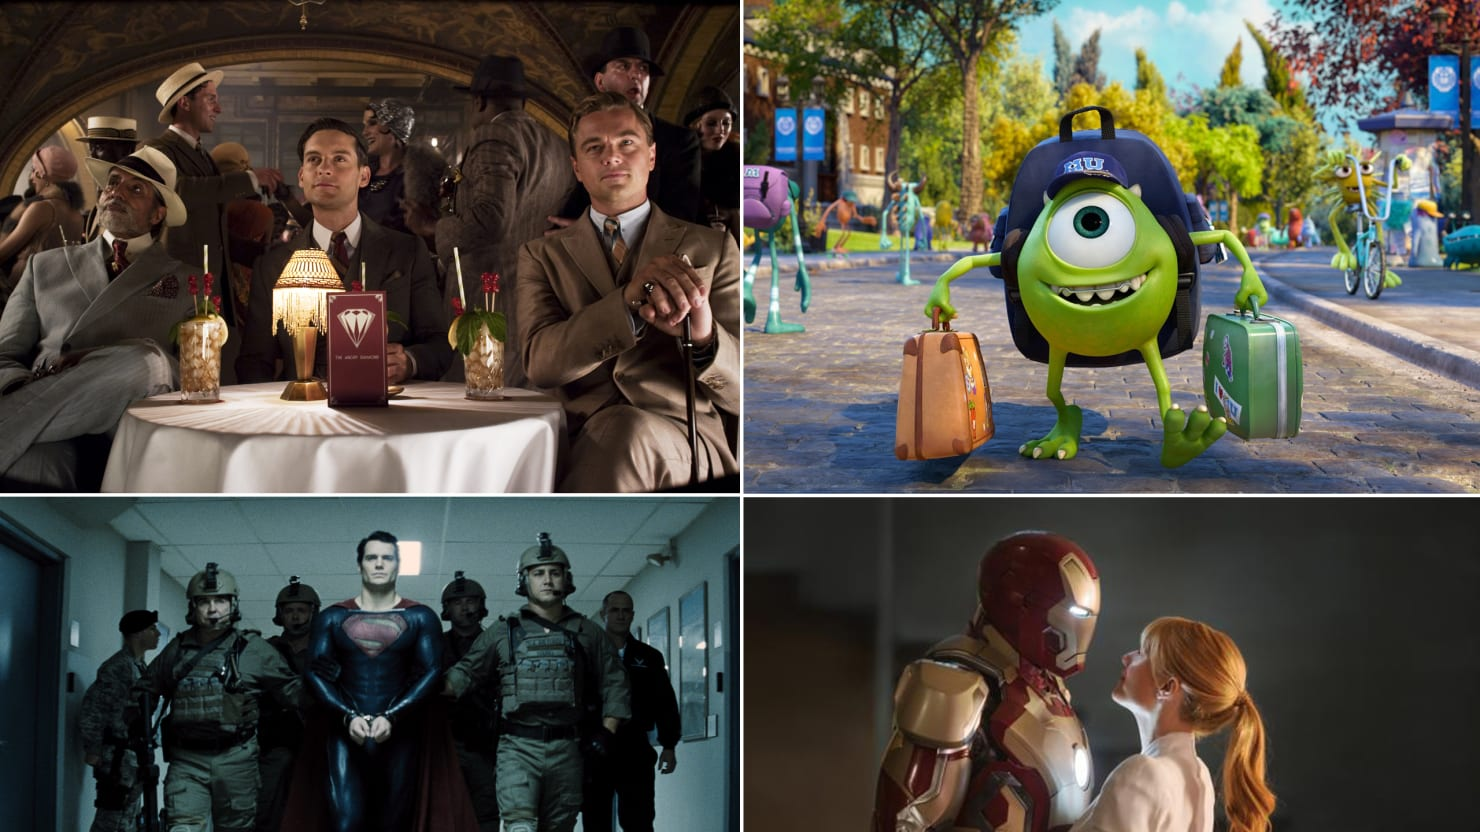 Summer Movie Preview: Iron Man 3, The Great Gatsby, Man Of Steel, and More